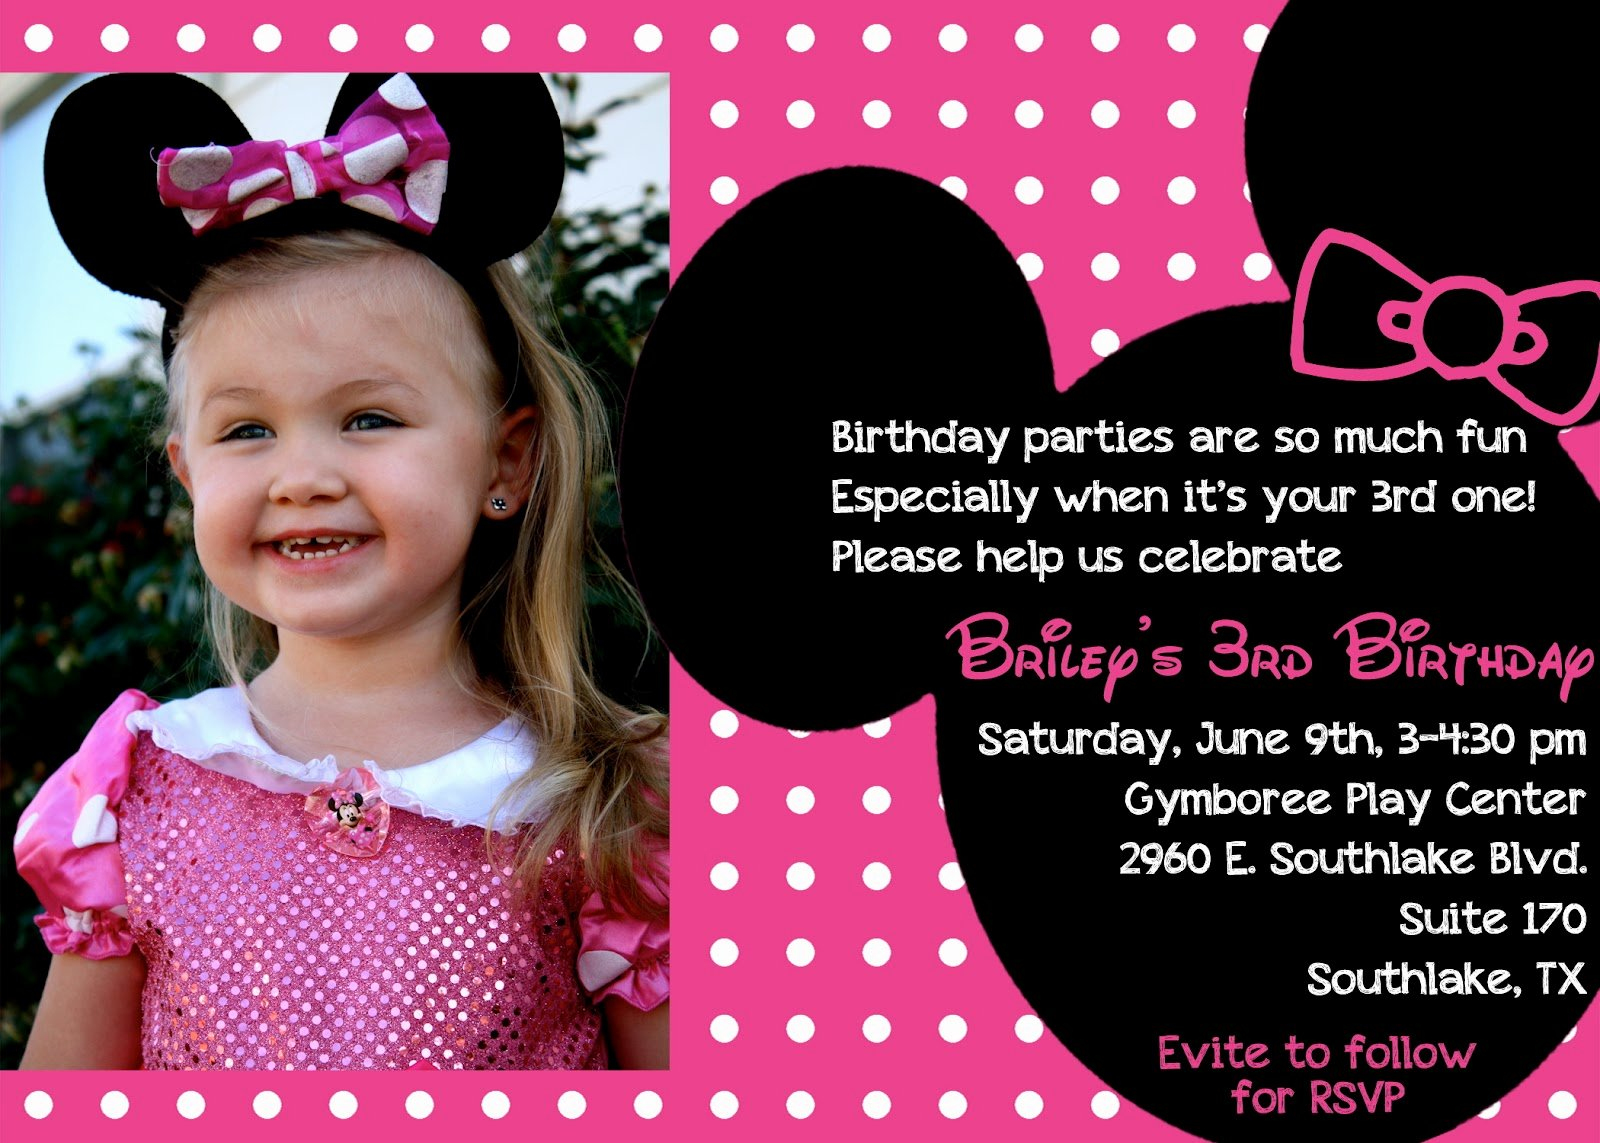 Minnie Mouse Birthday Invitation Wording Luxury the Bufe Family Minnie Mouse 3rd Birthday Party